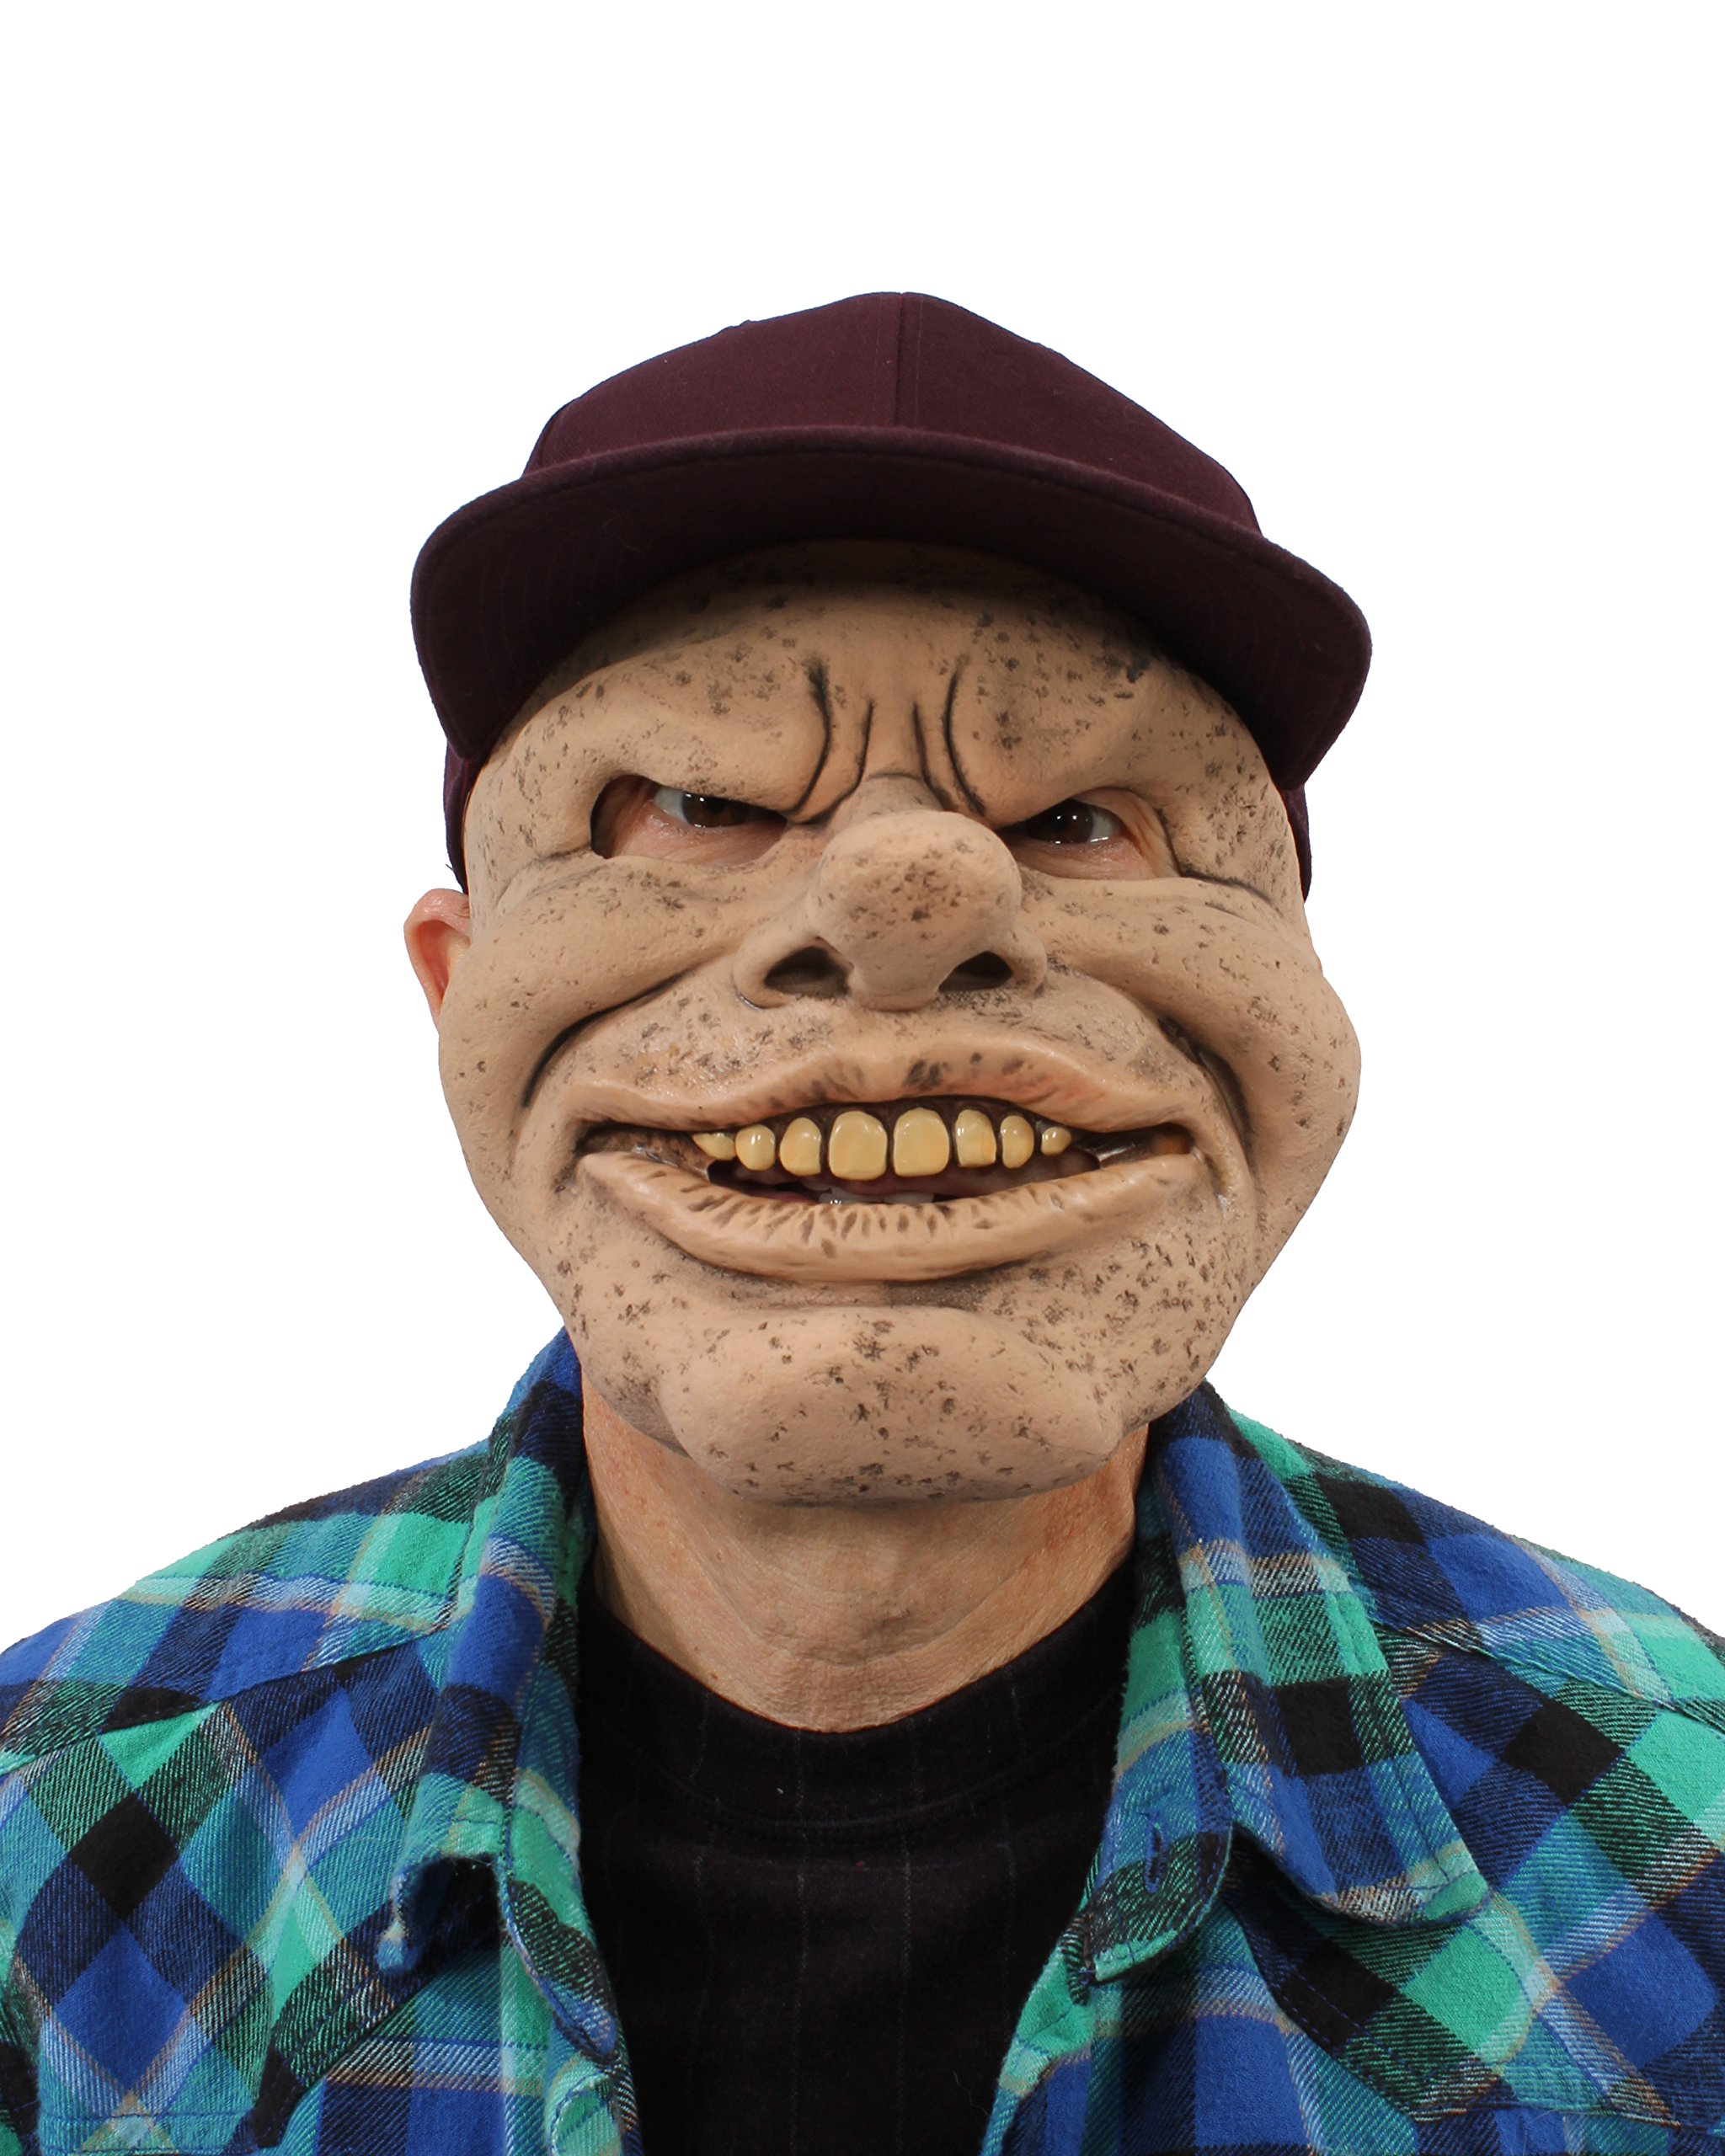 Zagone Studios Bully (Mean Angry Man) Mask